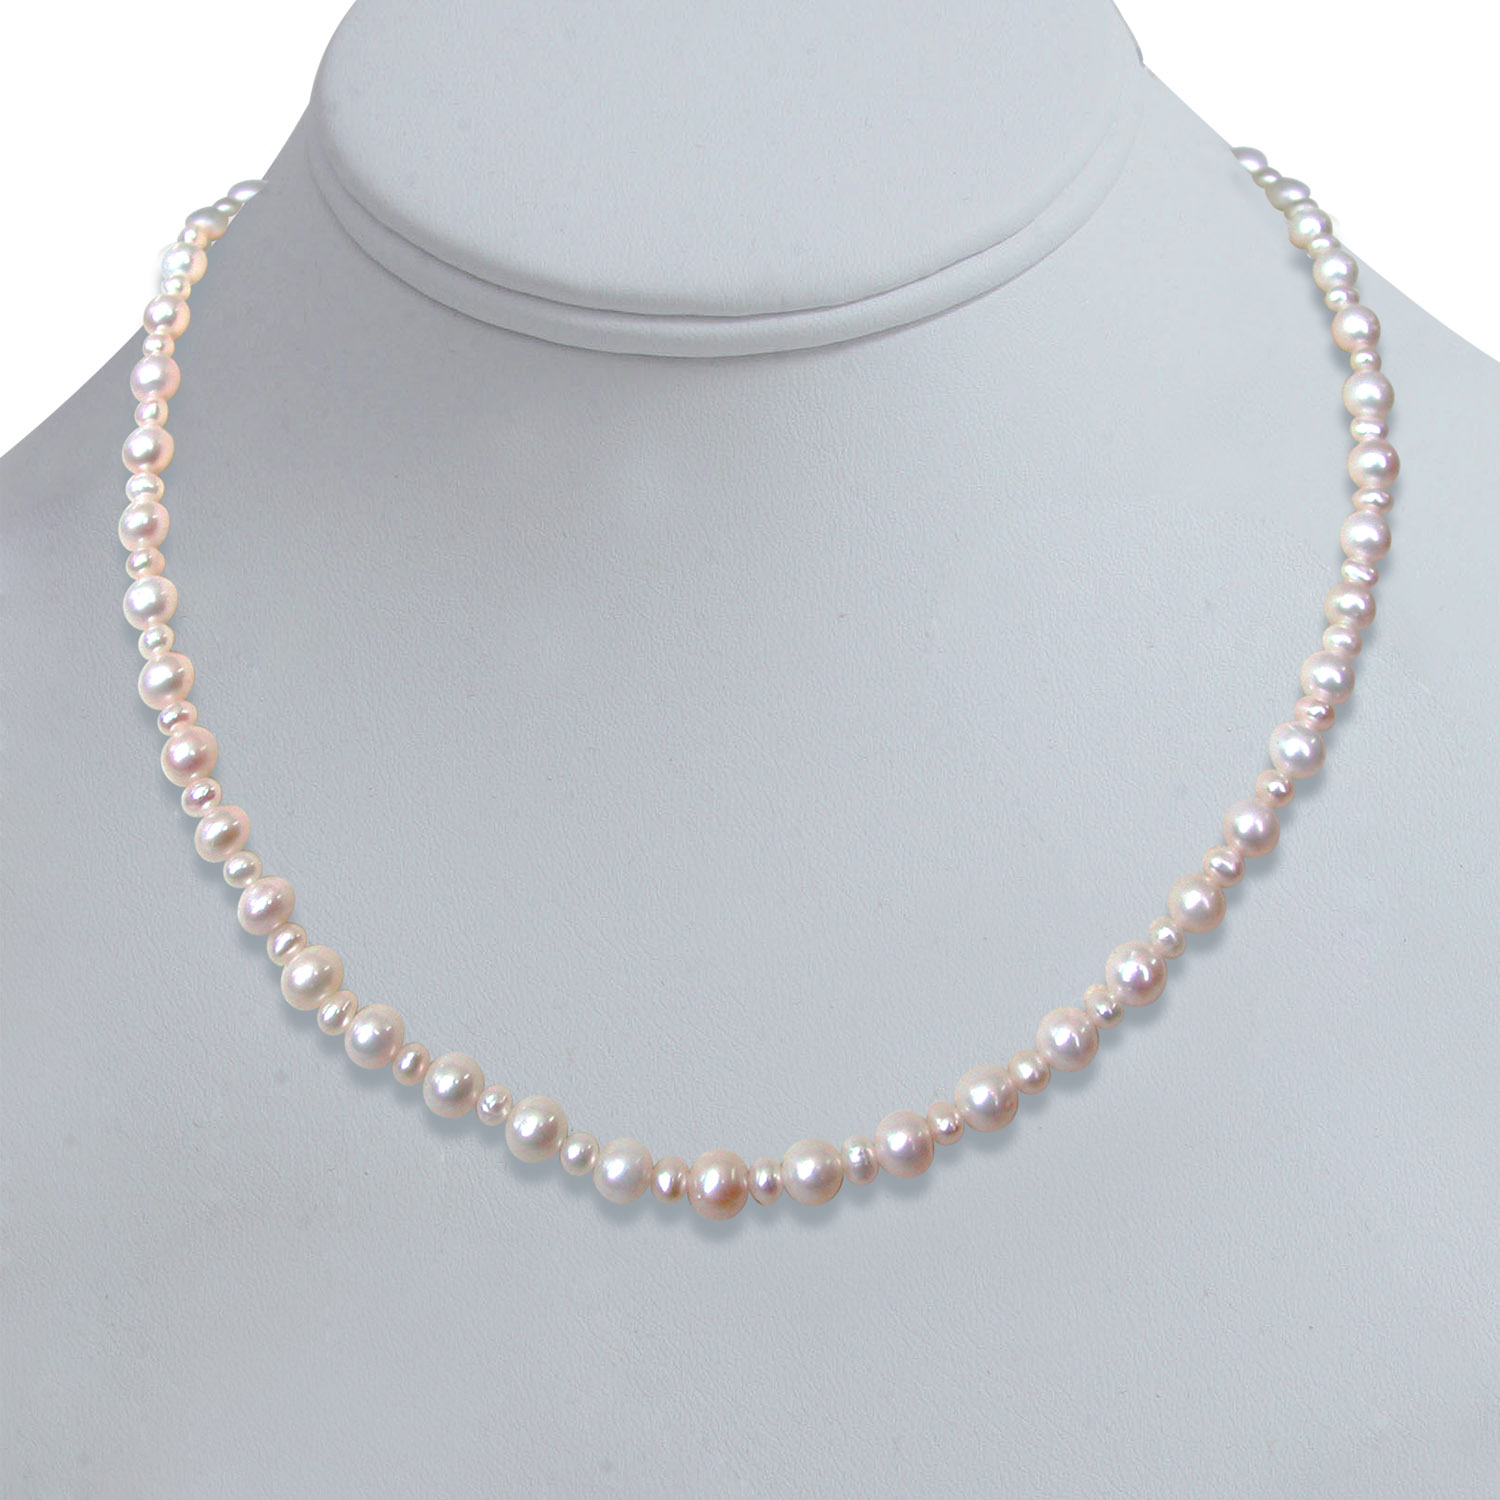 Round Radiance - Single Line Big & Small Real Freshwater Pearl Necklace for Women (SN124)